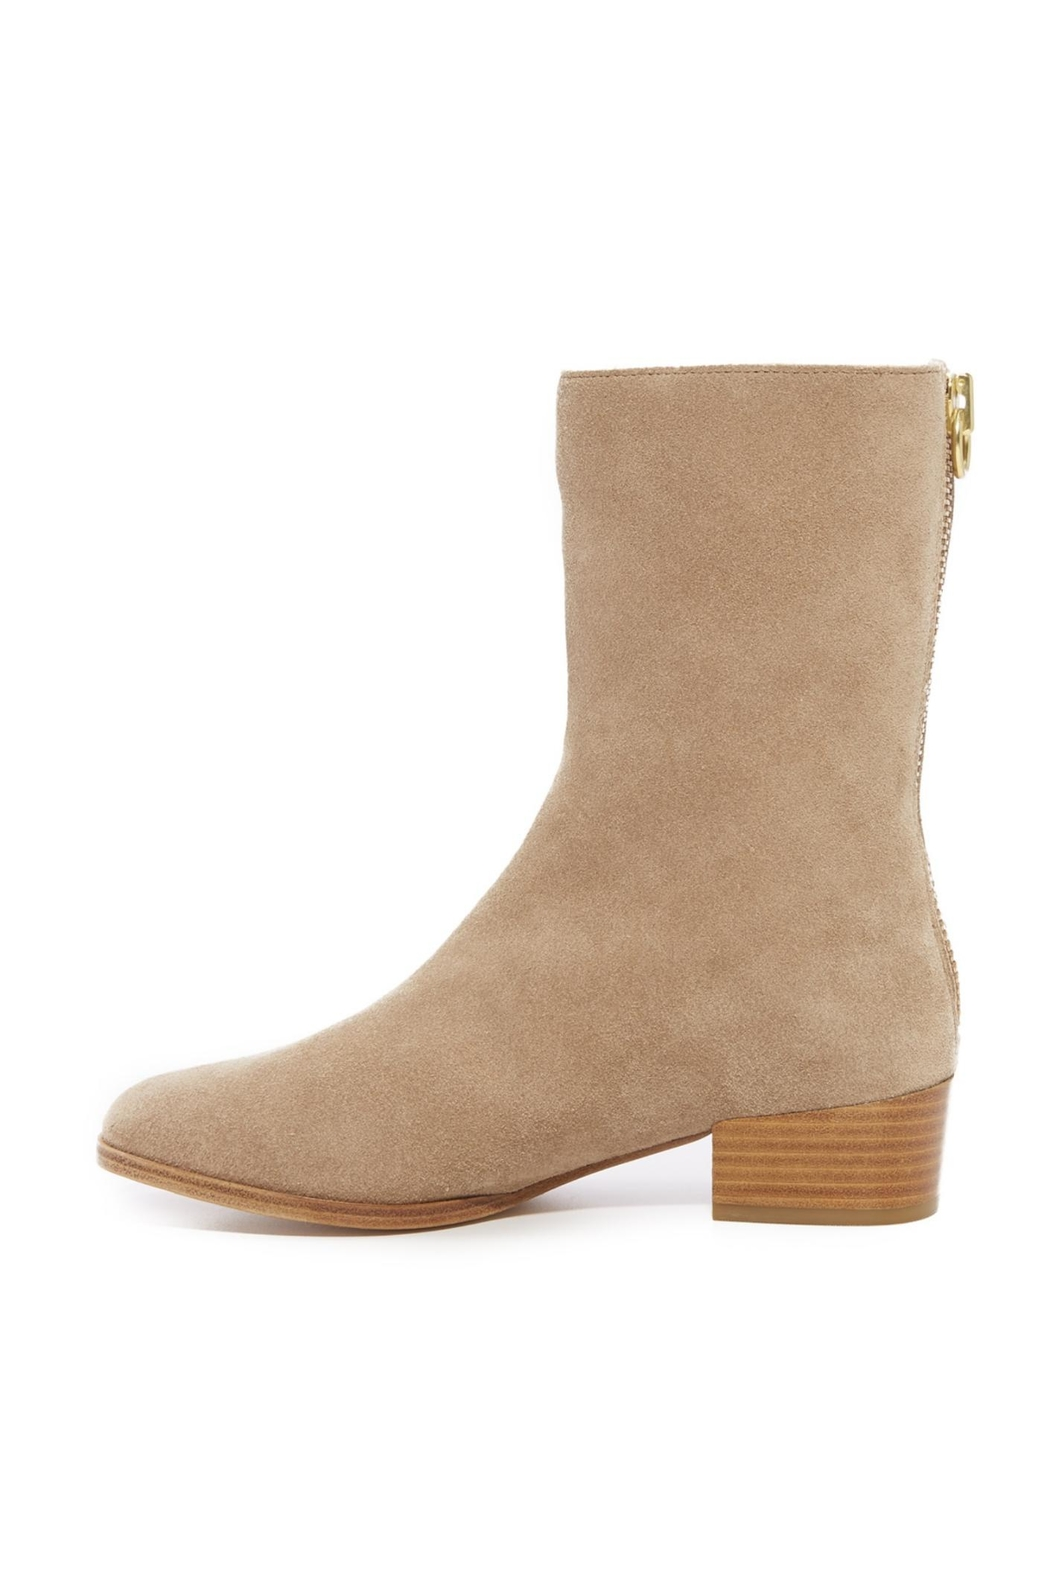 Joie Rabie Boots - Front Full Image